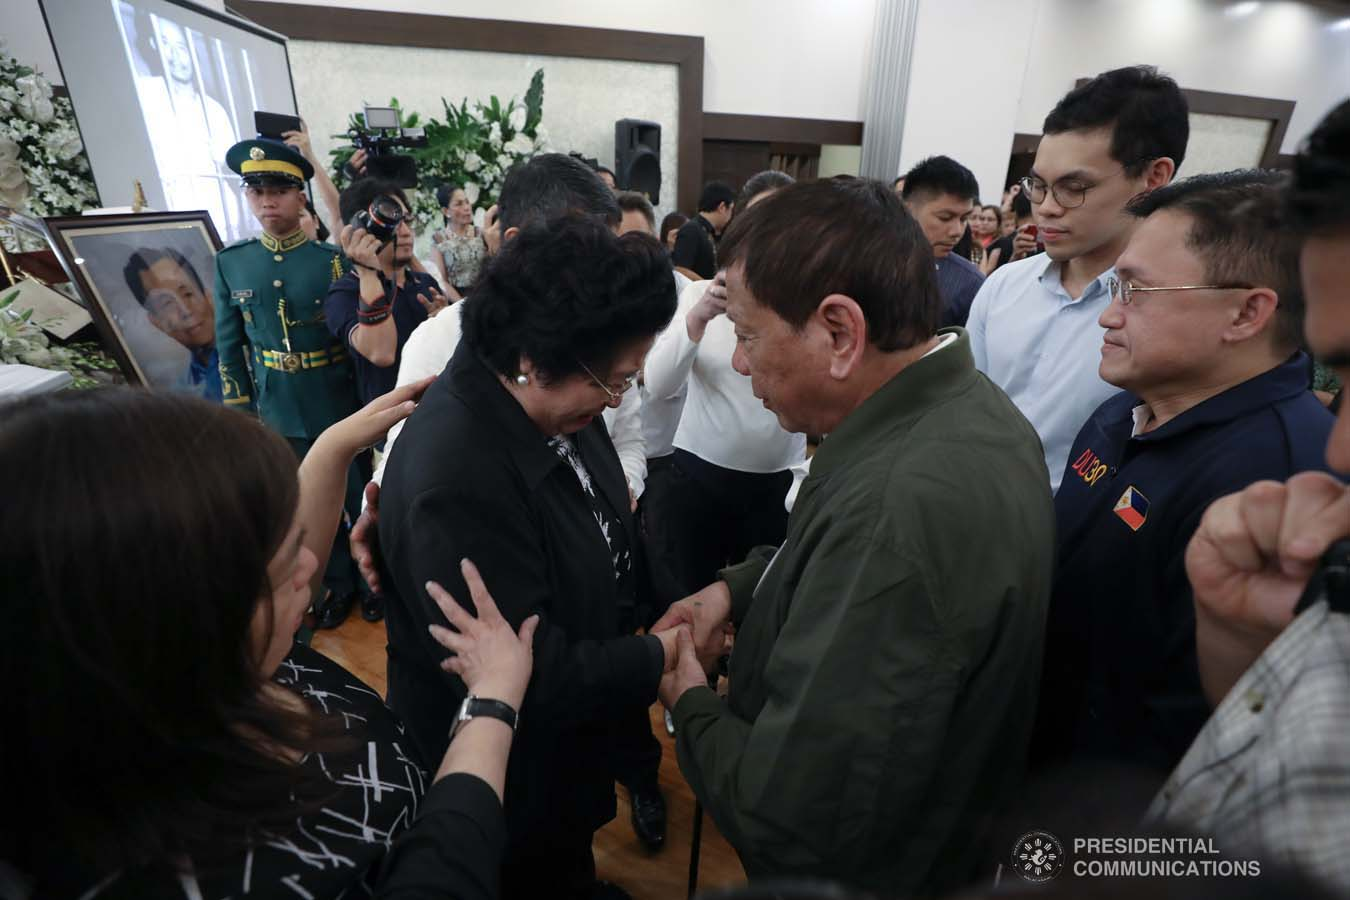 President Rodrigo Roa Duterte condoles with the family of the late former Senate President Aquilino Pimentel Jr. as he visits the wake at the Heritage Memorial Park in Taguig City on October 22, 2019. KARL NORMAN ALONZO/PRESIDENTIAL PHOTO